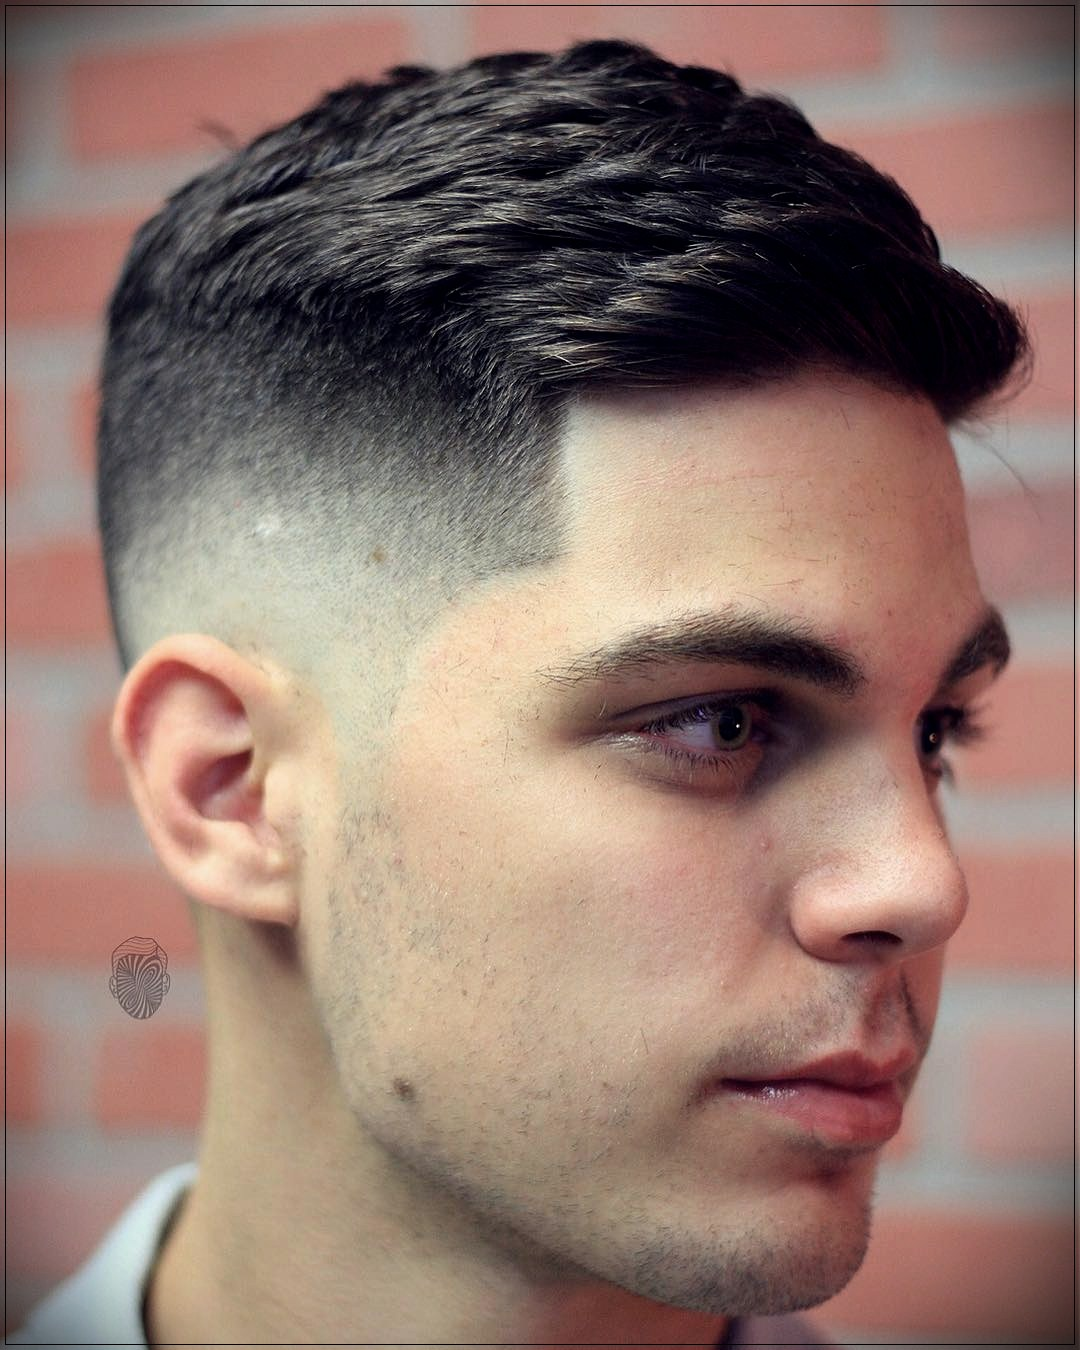 Short haircuts for men in 2018 7 - Sport these Short Haircuts for men in 2018